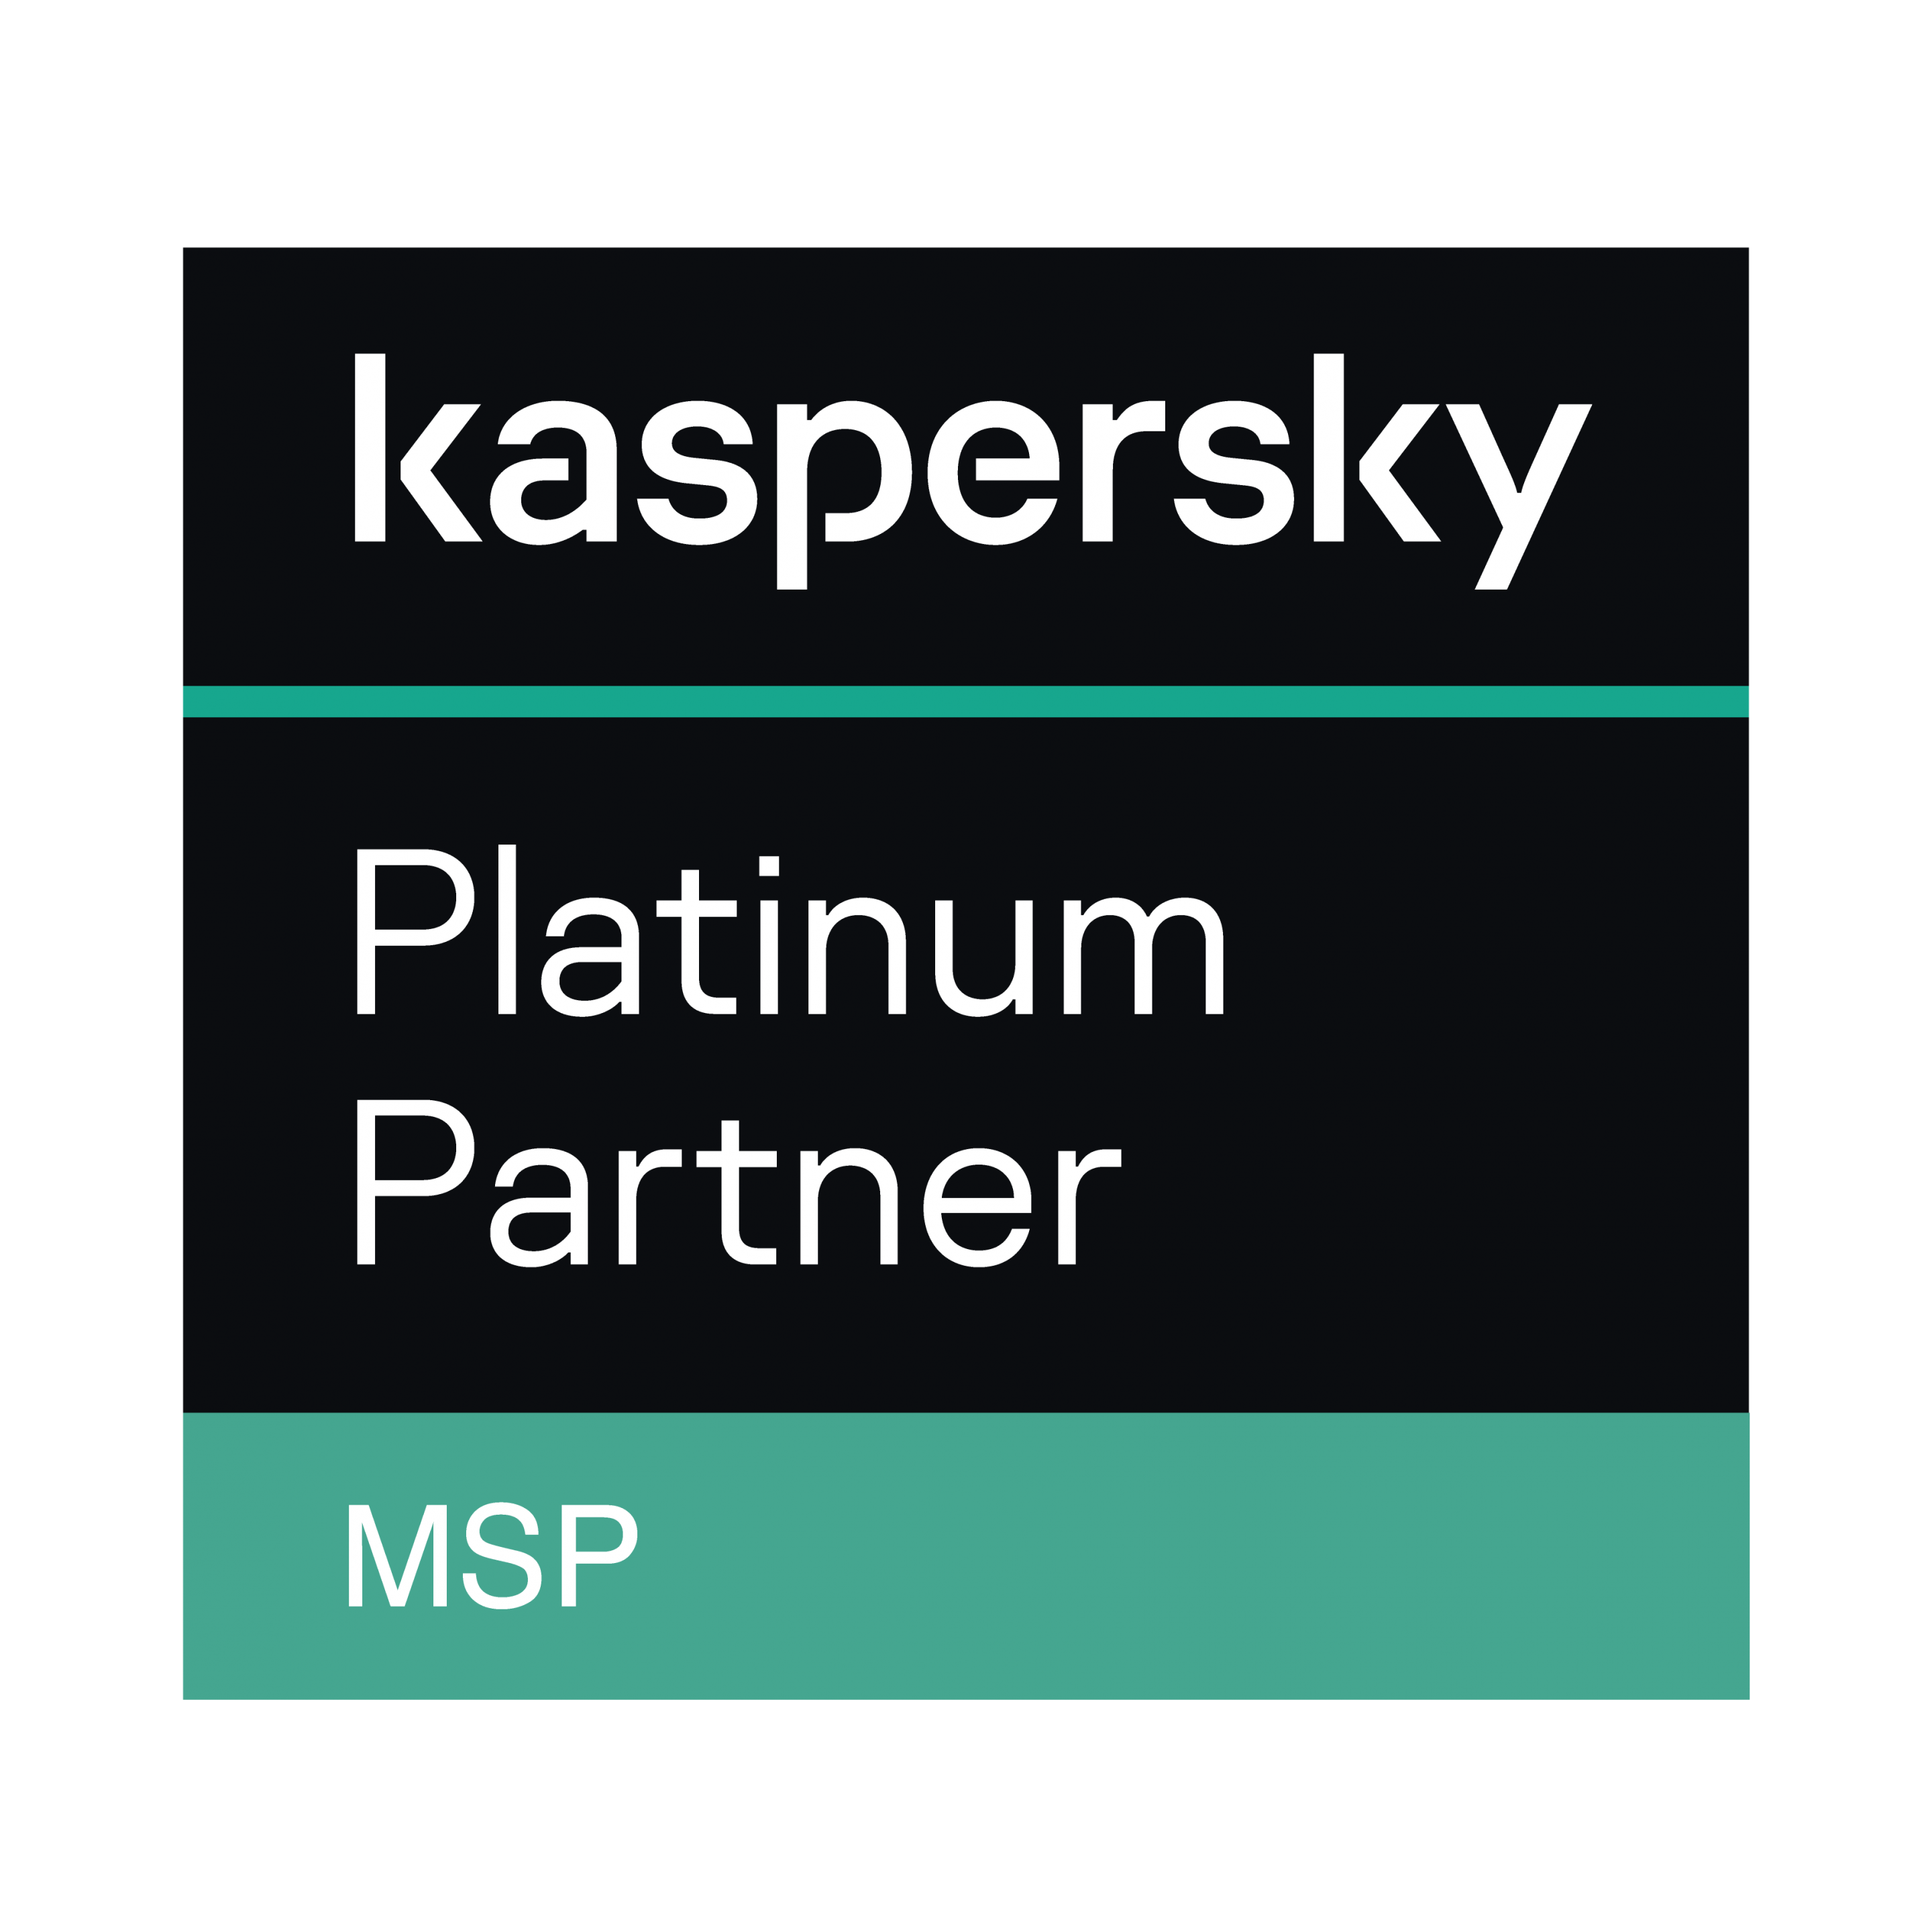 AVeS Cyber Security is a Platinum and MSP Kaspersky partner